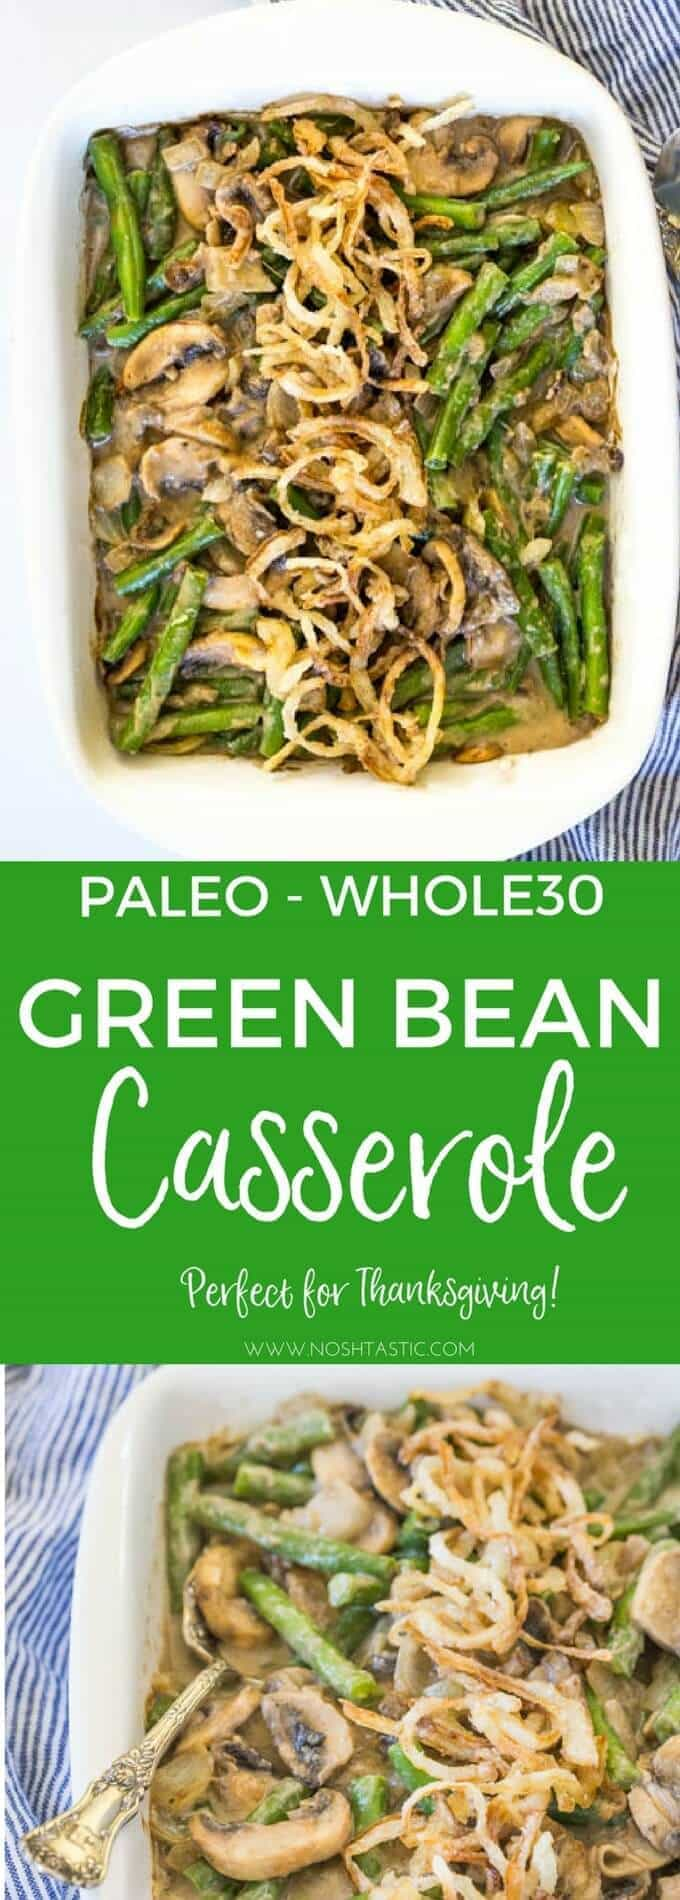 Paleo Green Bean Casserole for your Thanksgiving Table!! Easy, Healthy, Whole30 and Gluten Free! #paleo #paleothanksgiving #whole30 #glutenfree #paleogreenbeancasserole #whole30greenbeancasserole #dairyfree #healthythanksgiving